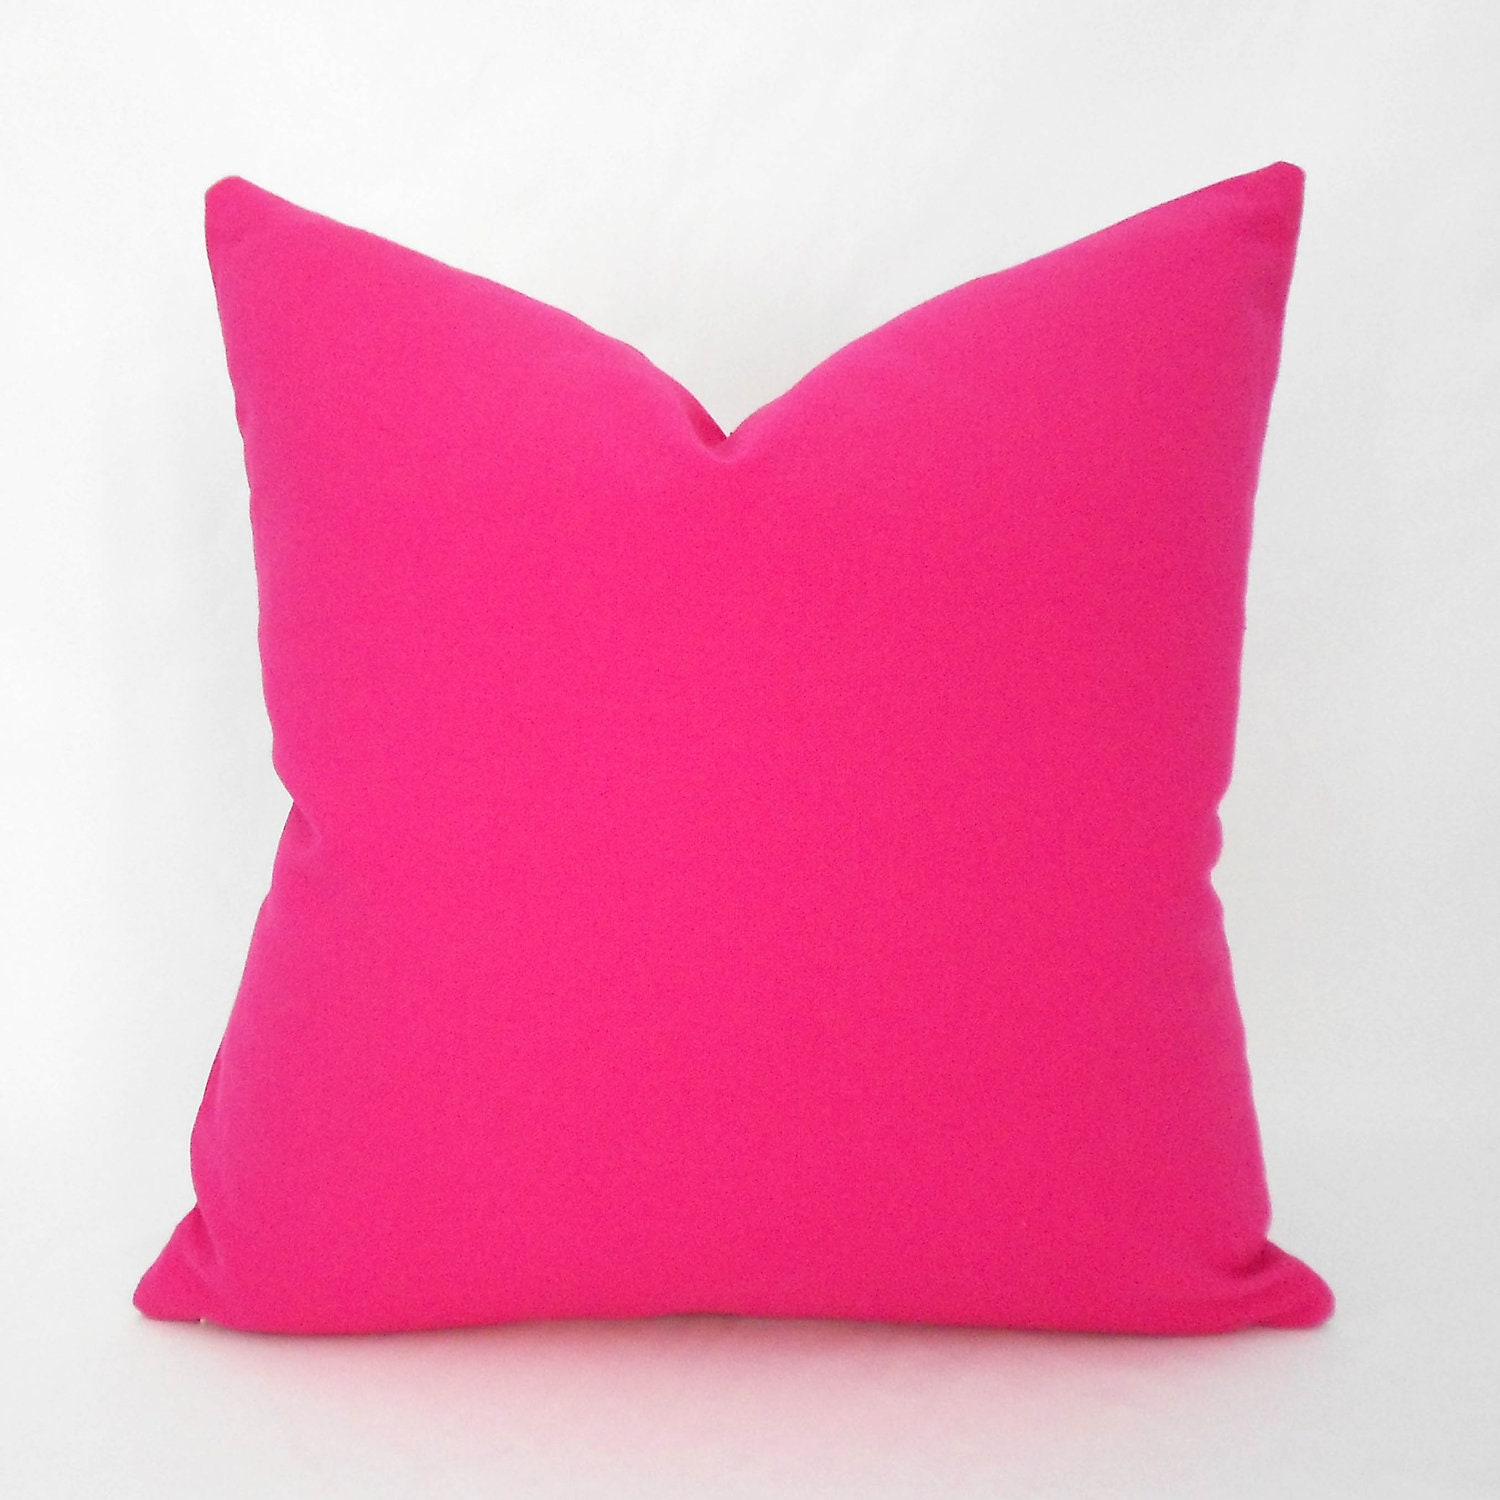 Decorative Pillow Pink : Hot Pink Pillow Covers ANY SIZE Decorative Pillow Cover